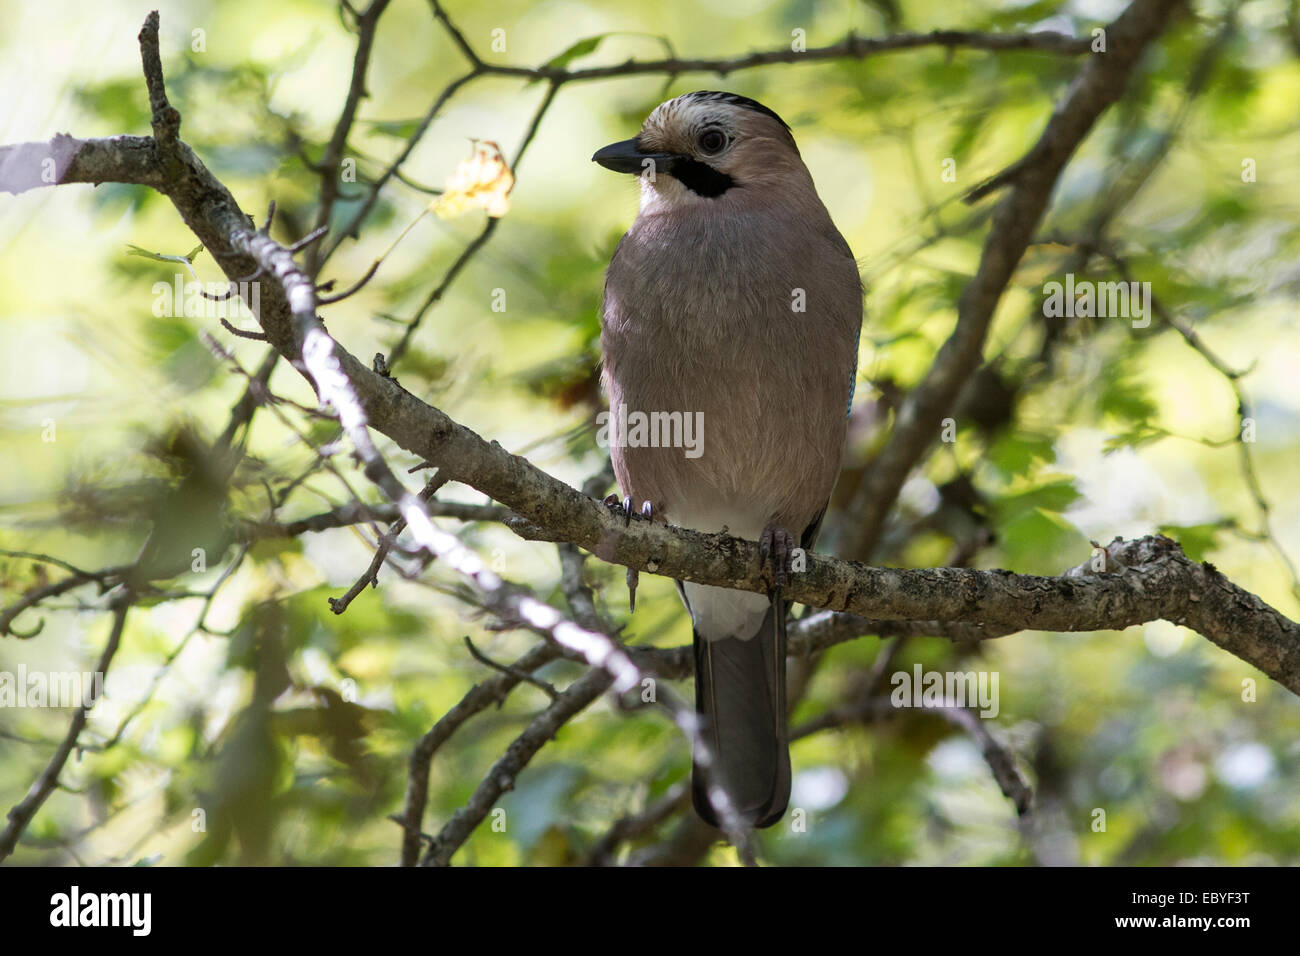 Black-headed or Caucasian  jay who sits on a branch in the forest - Stock Image